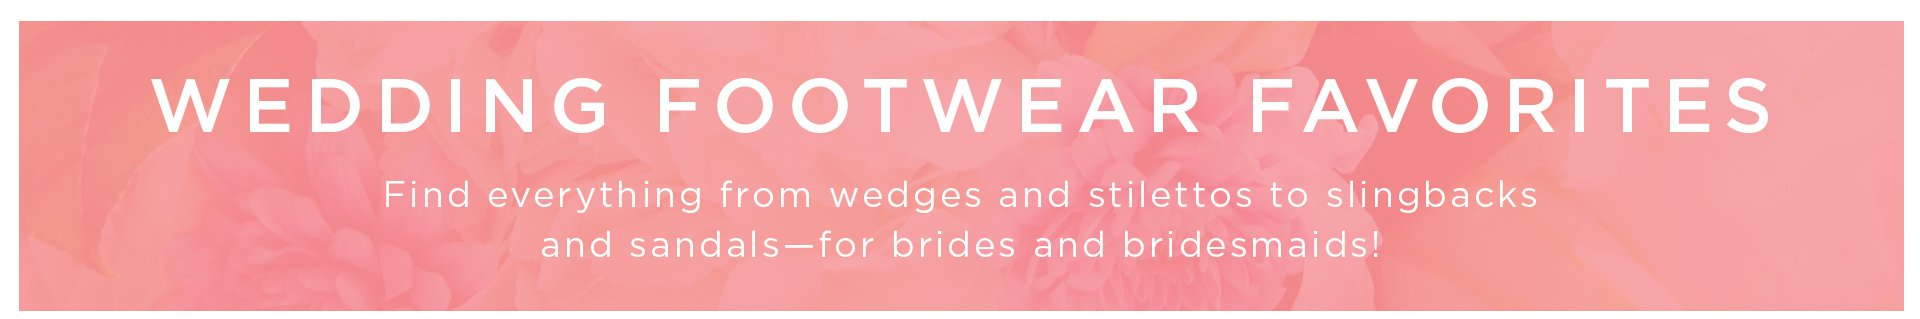 Header: Wedding Footwear Favorites